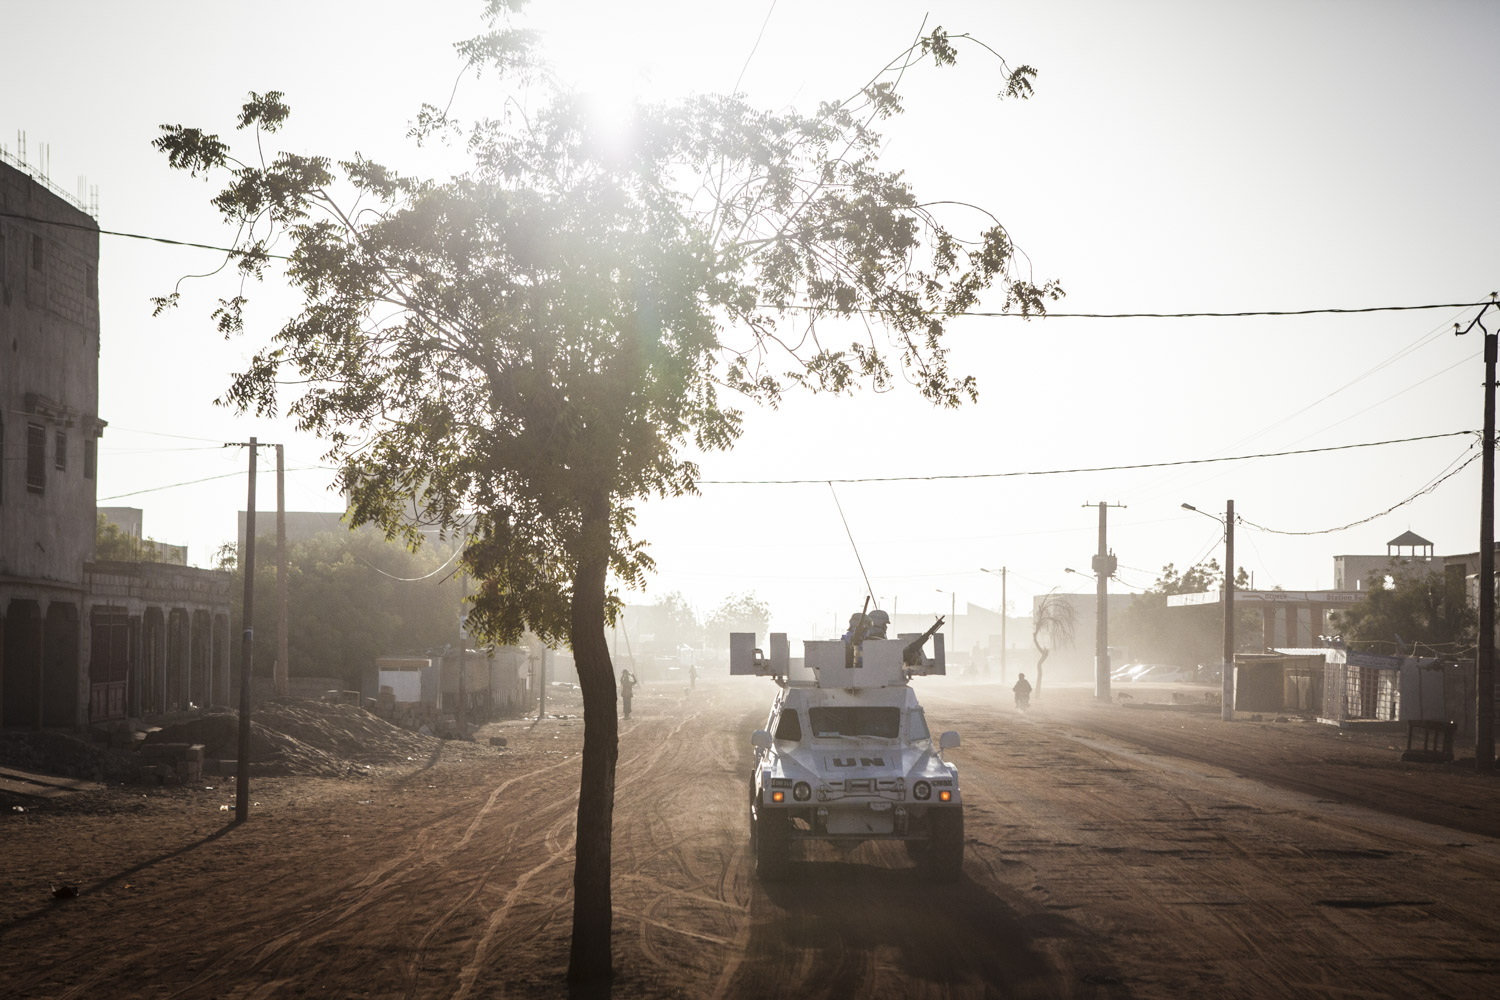 Gao, Mail- UN Peacekeepers from Senegal on an early morning patrol in Gao, Mali on Sunday, January 15, 2017. Despite the end of the occupation, many Malians find that security is still a major issue speaking of incidents of car jacking and looting. Even though crime is high, most of the deadly attacks that occur are against the United Nations Minusma mission, Malian soldiers and the French military. (Jane Hahn for the Washington Post)